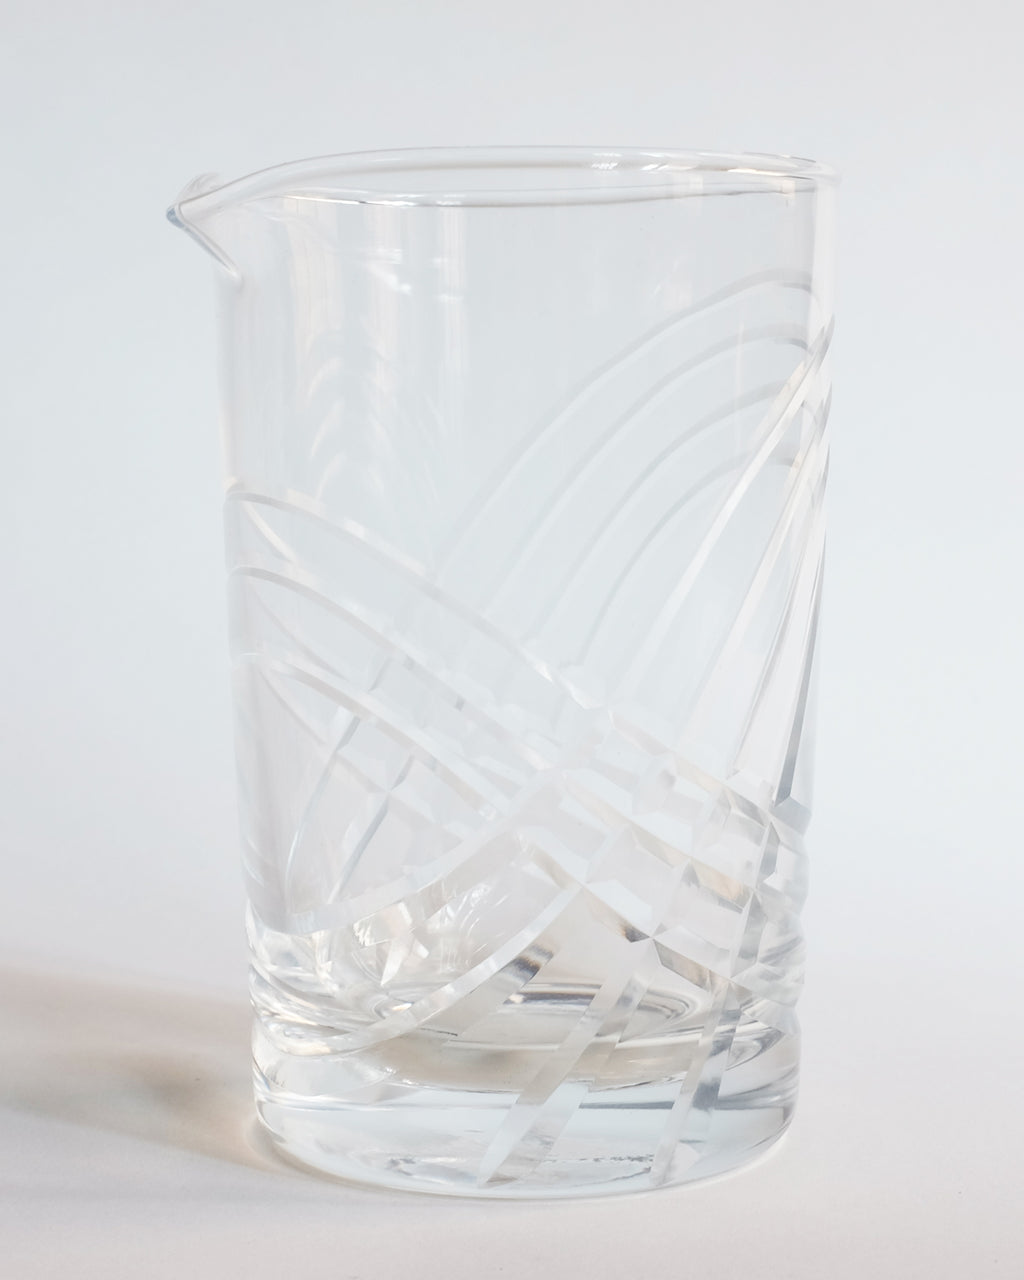 Mach 3 Mixing Glass